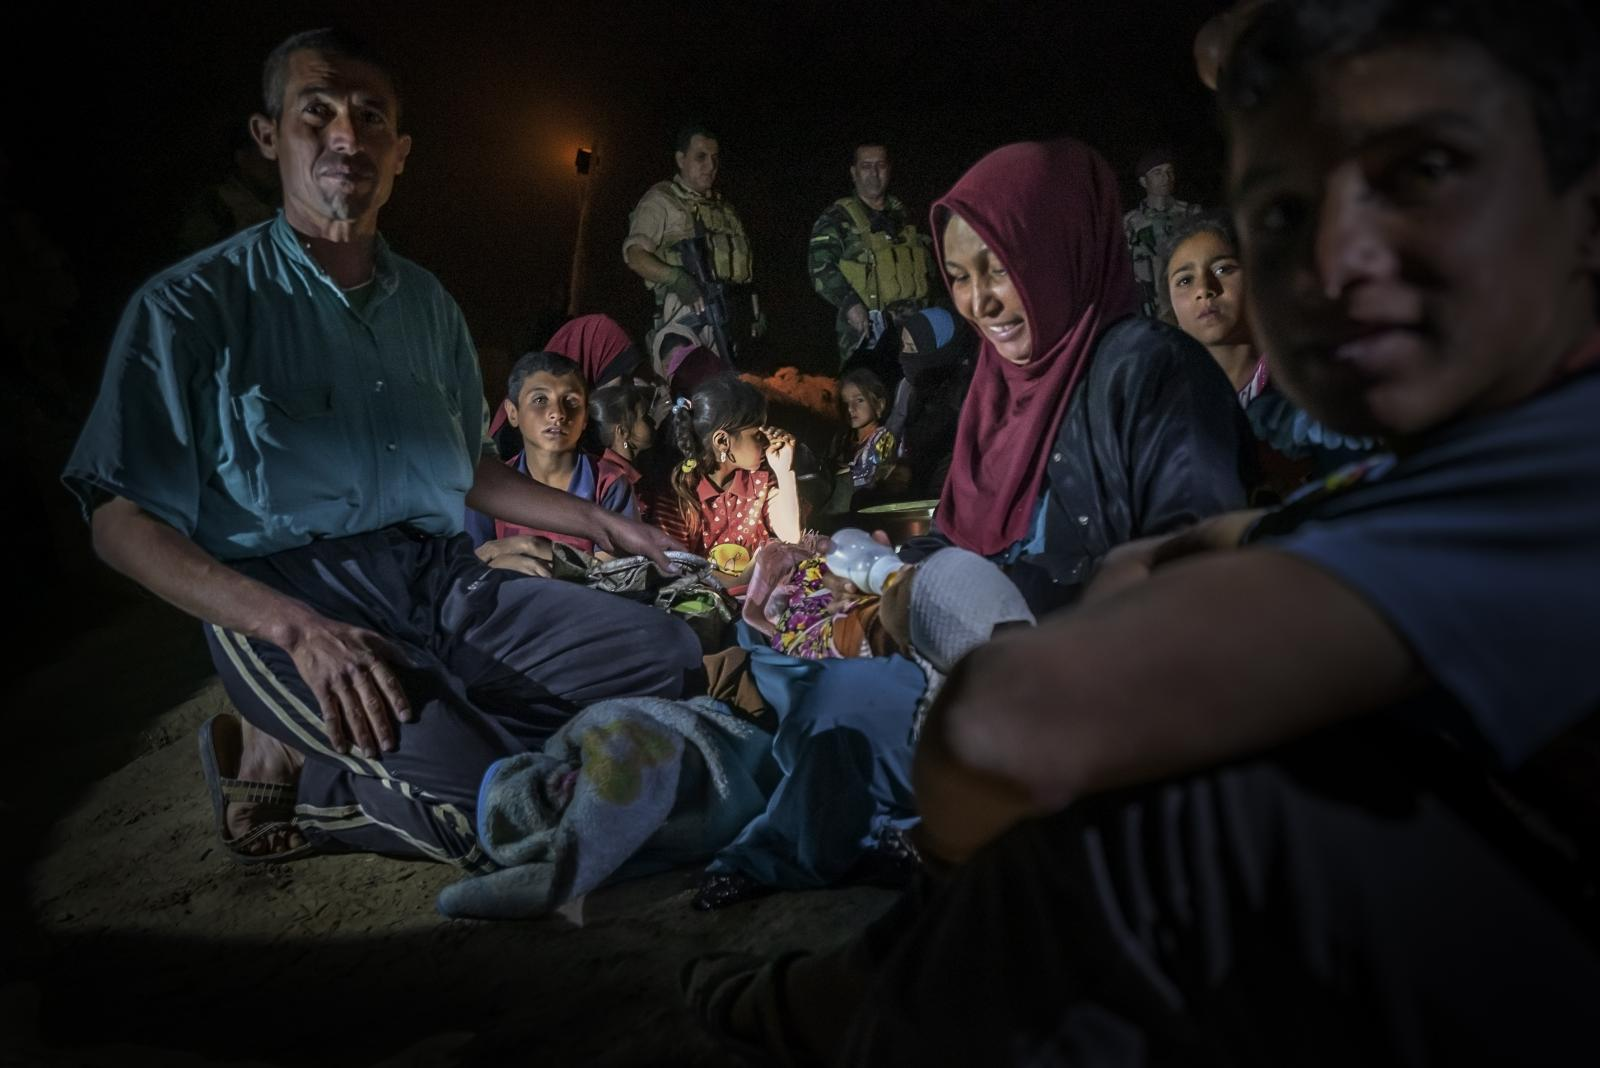 Refugees, who had fled desperately from the city of Mosul during the night, risking death if ISIS captured them, were rescued by Kurdish Peshmerga soldiers (those who face death) in Al-Qubeiba and later transferred to a refugee camp (Iraq, 2016)